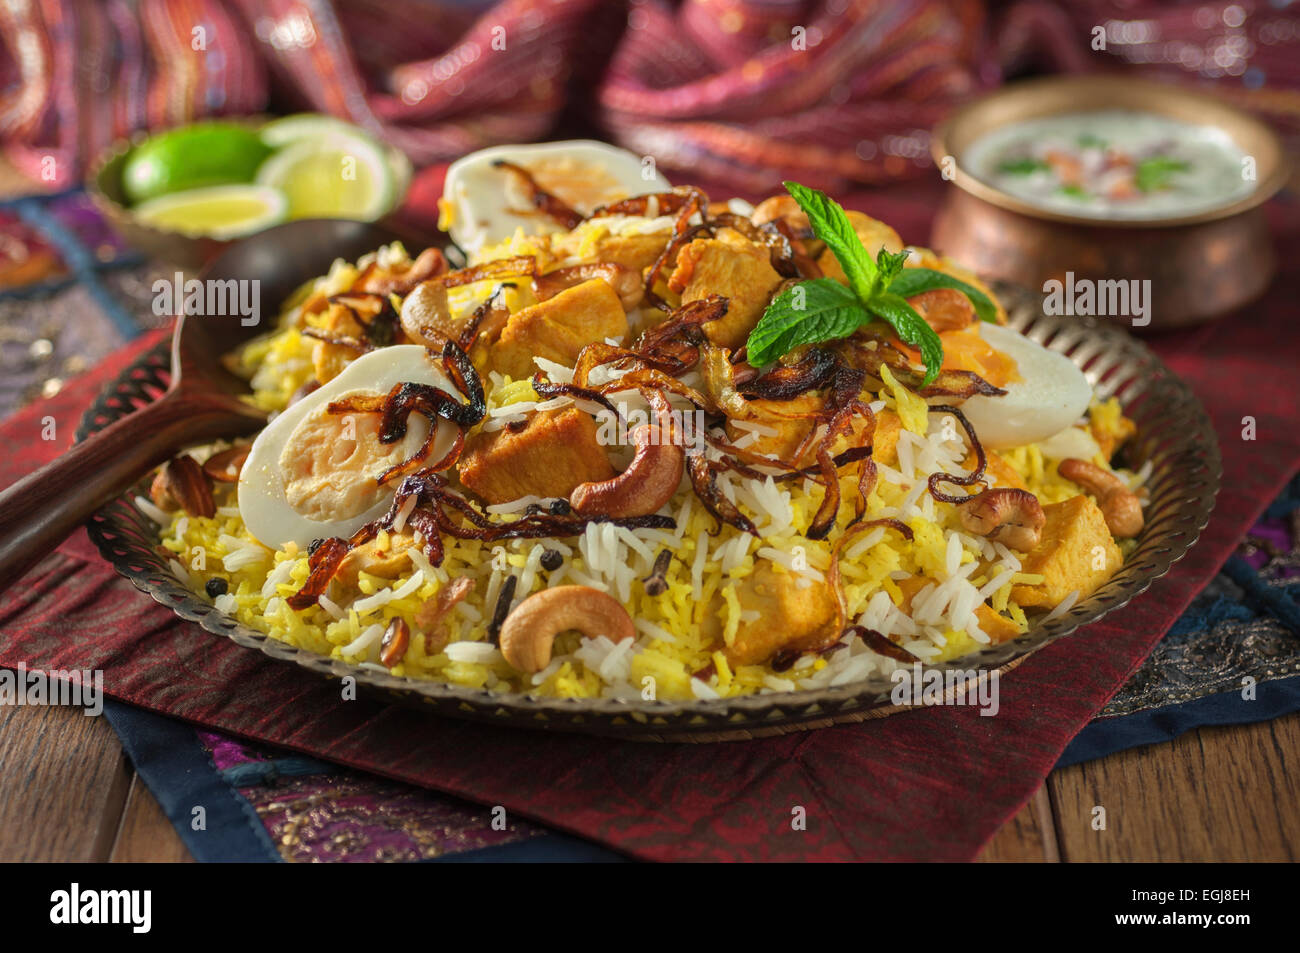 hyderabadi chicken biryani indisches essen stockfoto bild 79077785 alamy. Black Bedroom Furniture Sets. Home Design Ideas